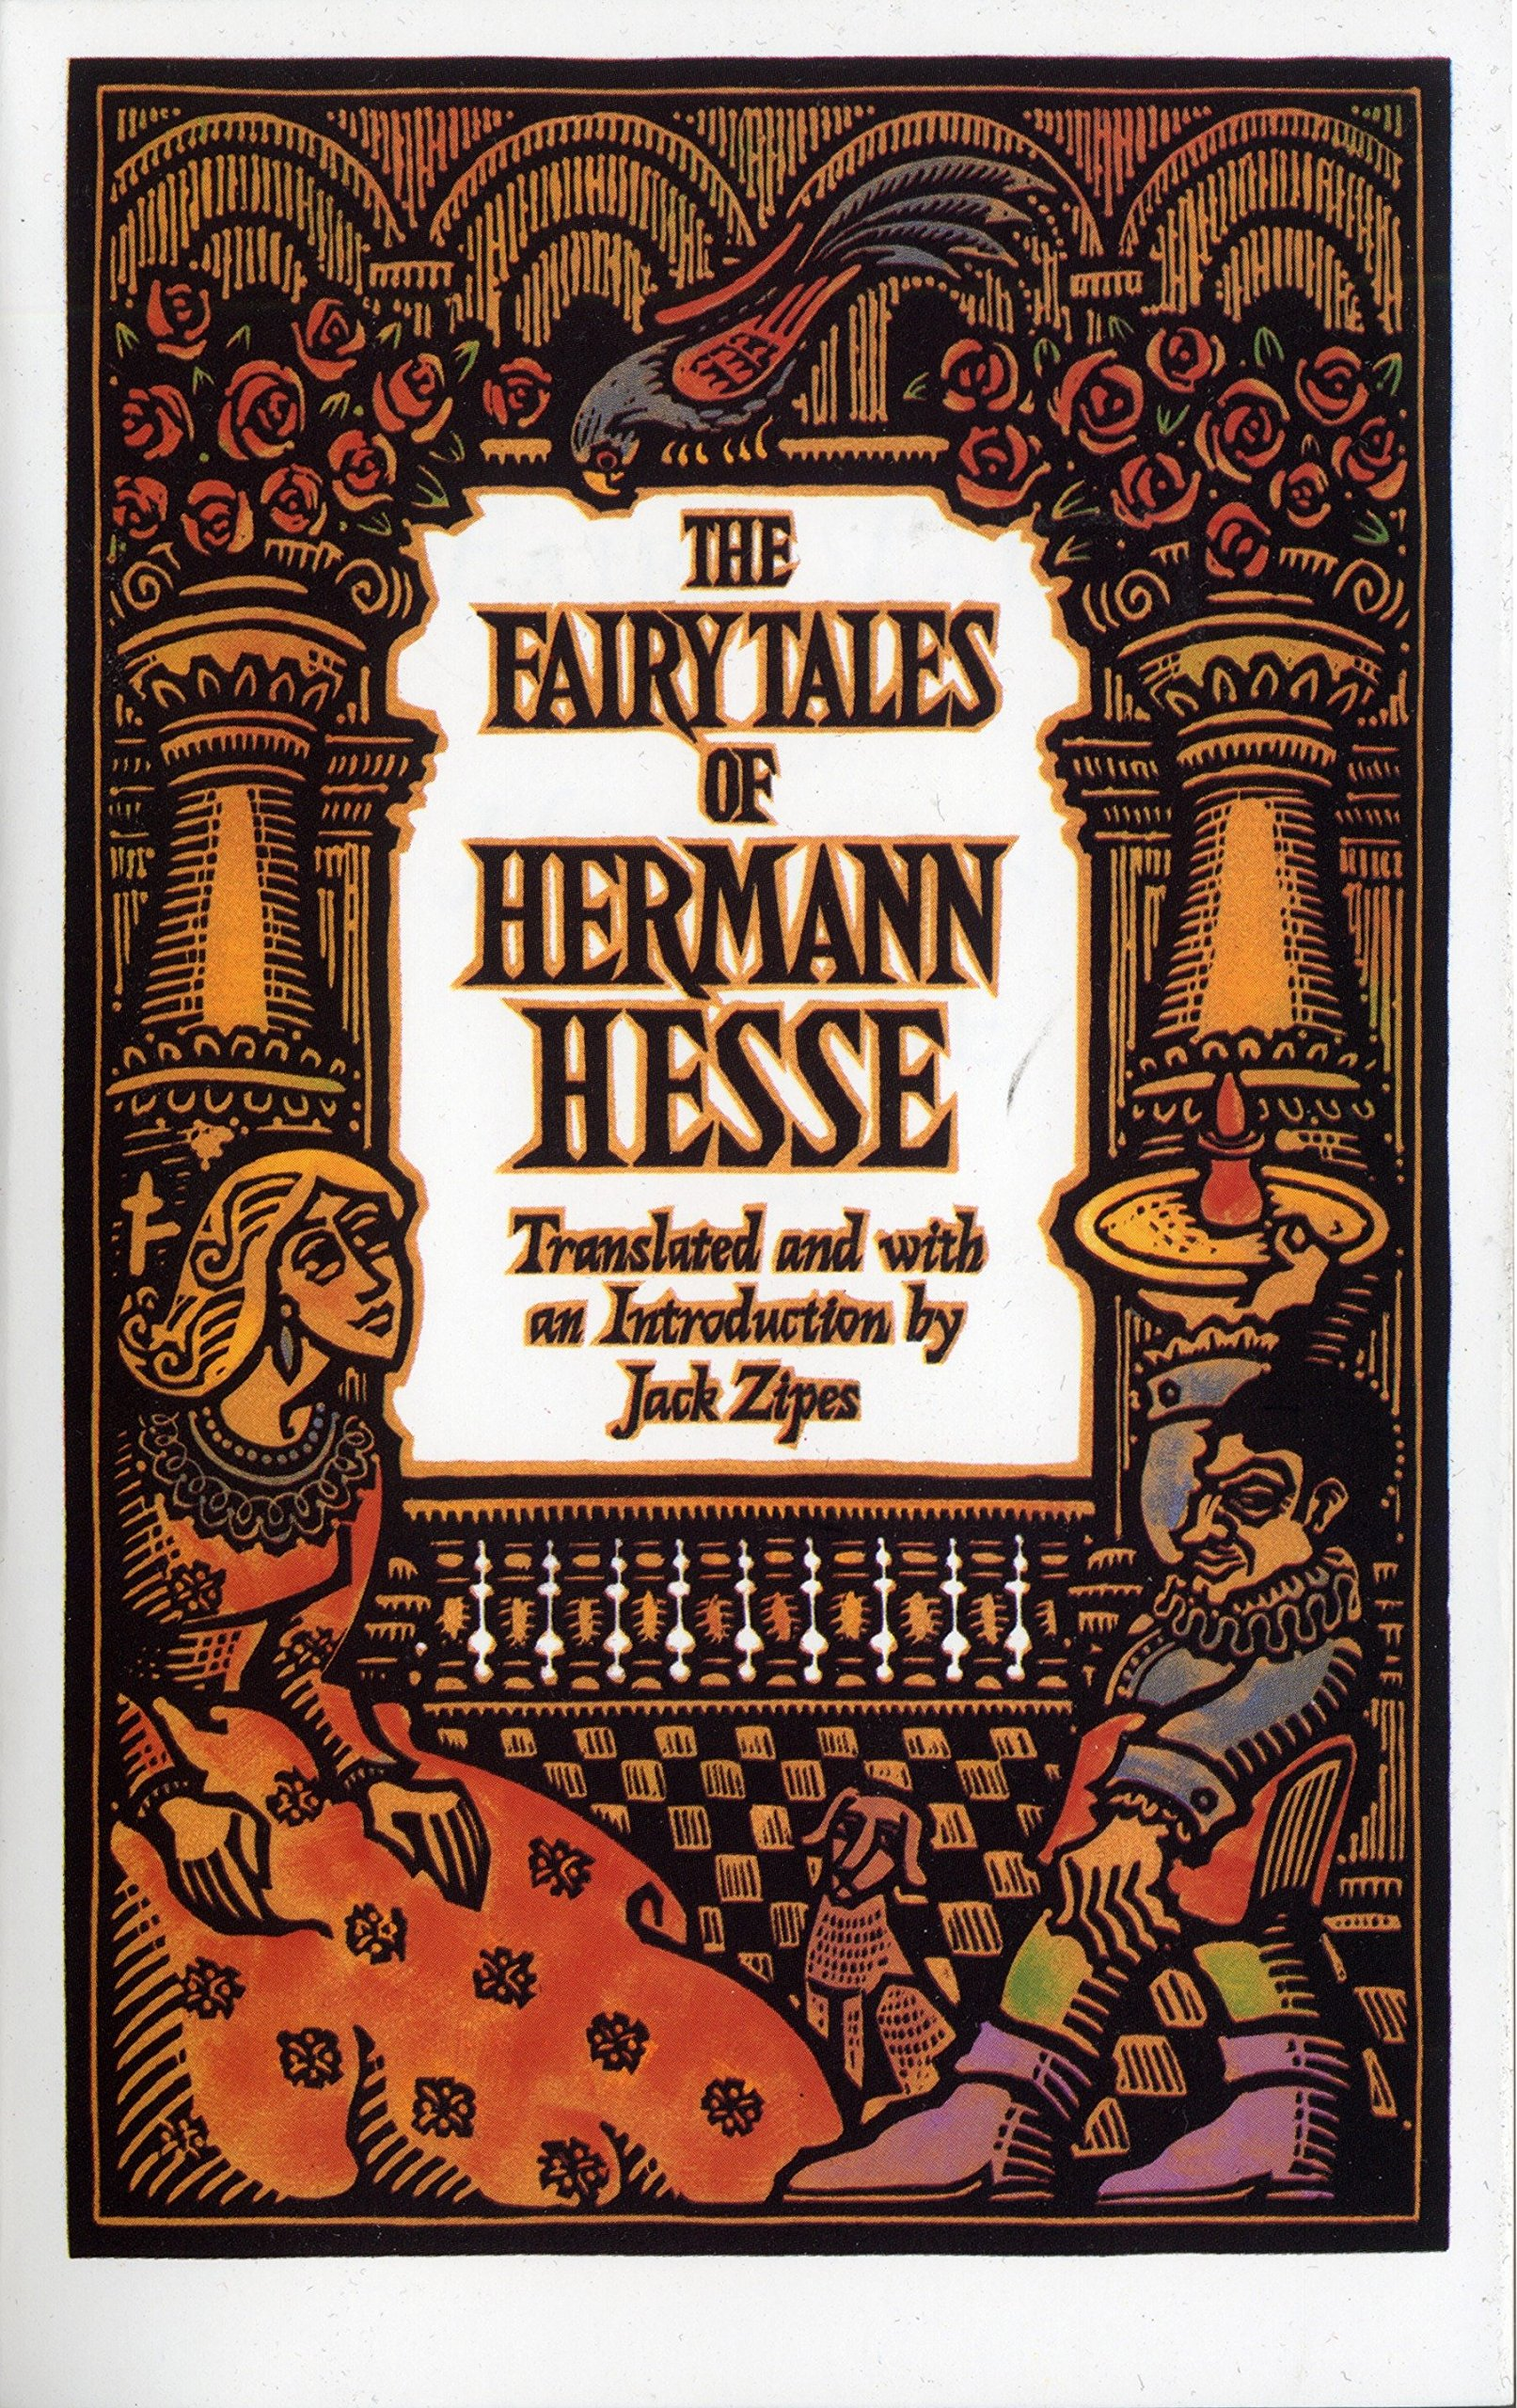 THE FAIRY TALES OF HERMANN HESSE EPUB DOWNLOAD